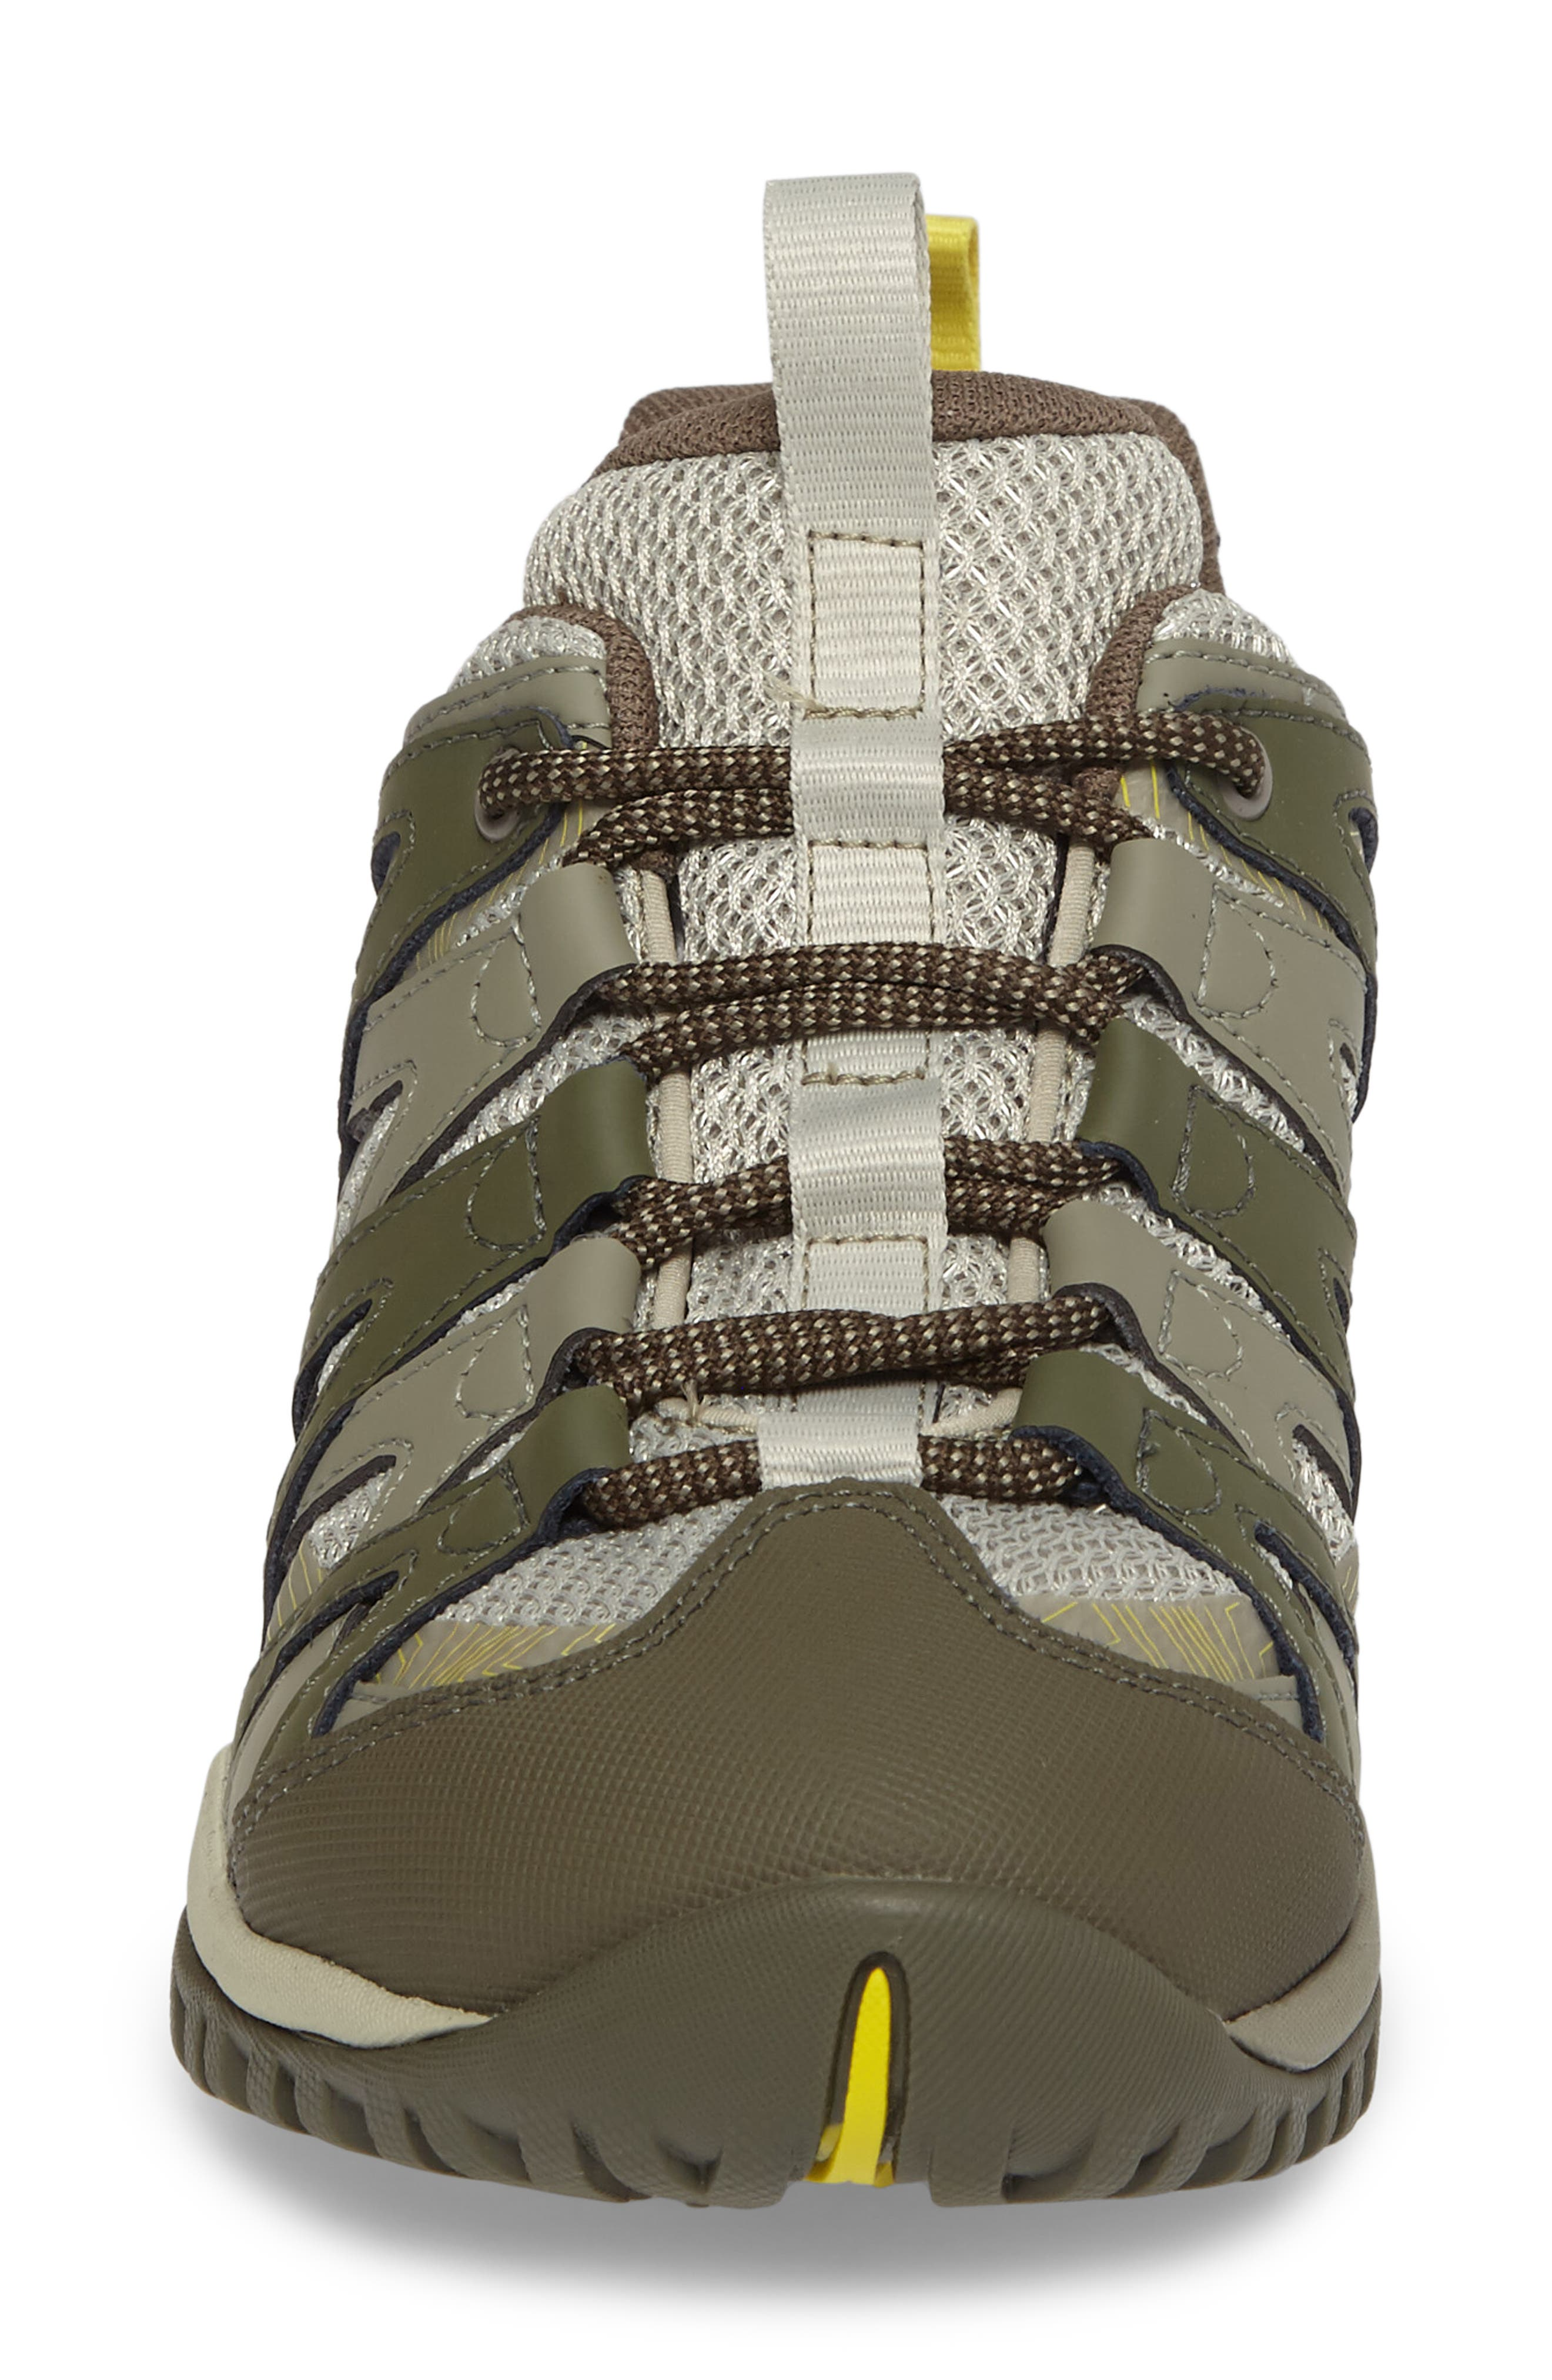 Siren Hex Waterproof Sneaker,                             Alternate thumbnail 4, color,                             310